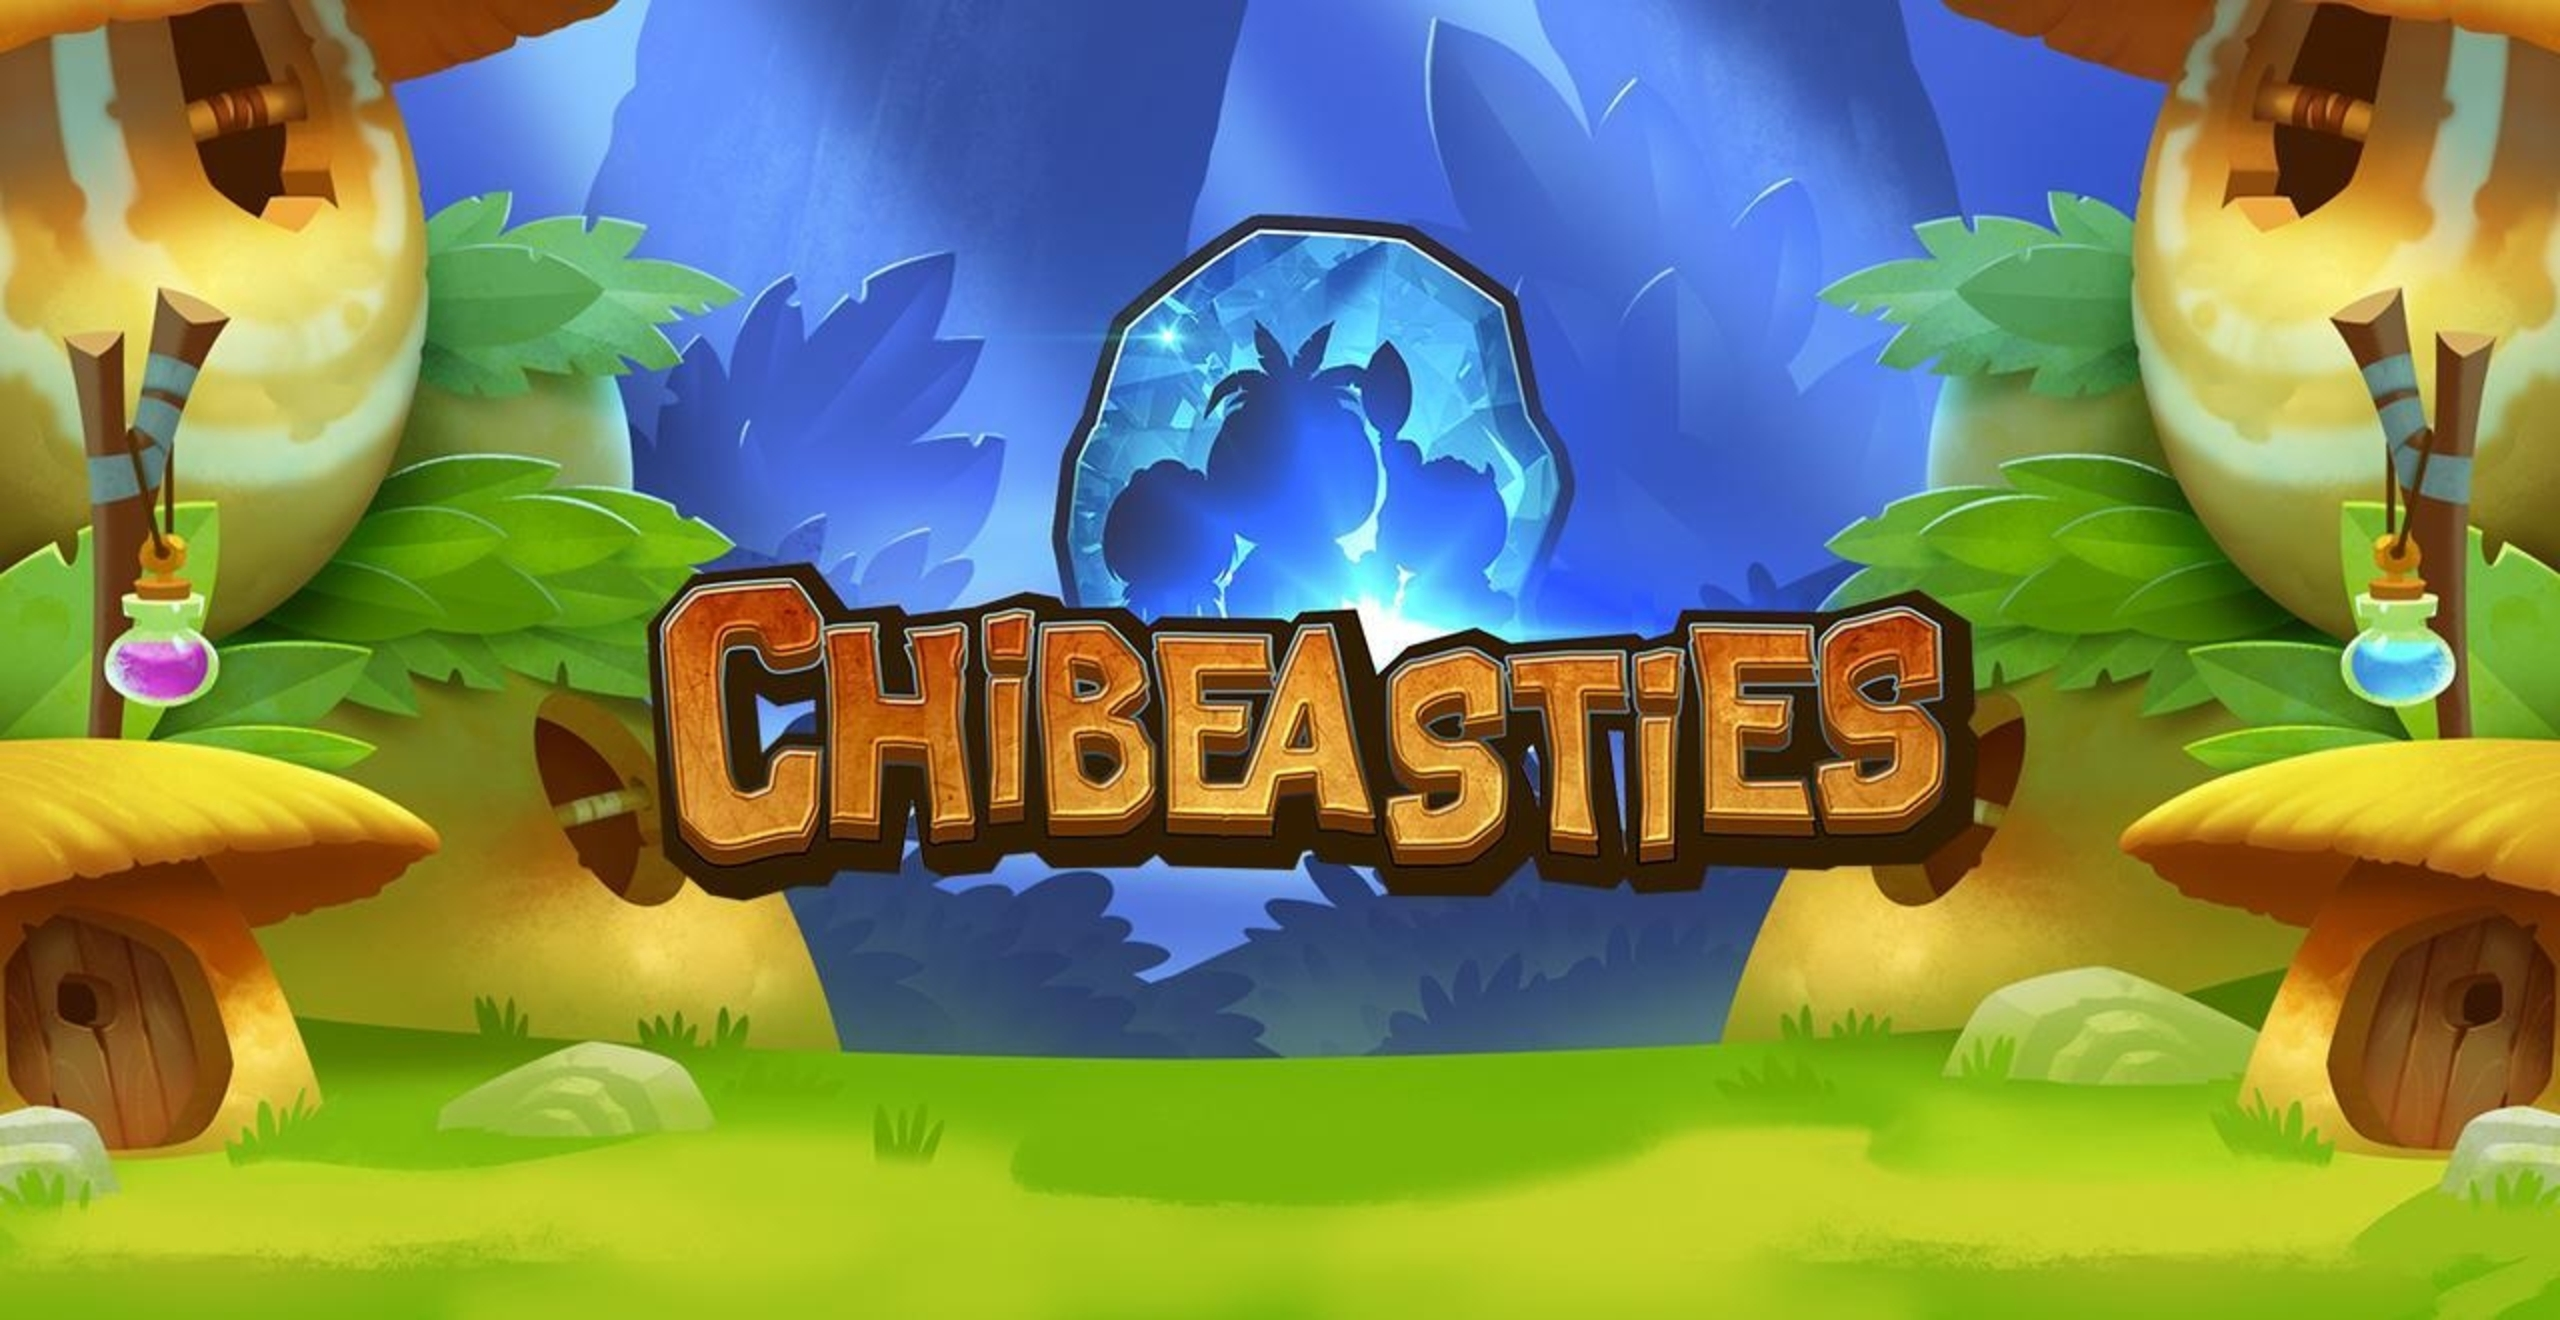 Se Chibeasties Online Slot Demo Game, Yggdrasil